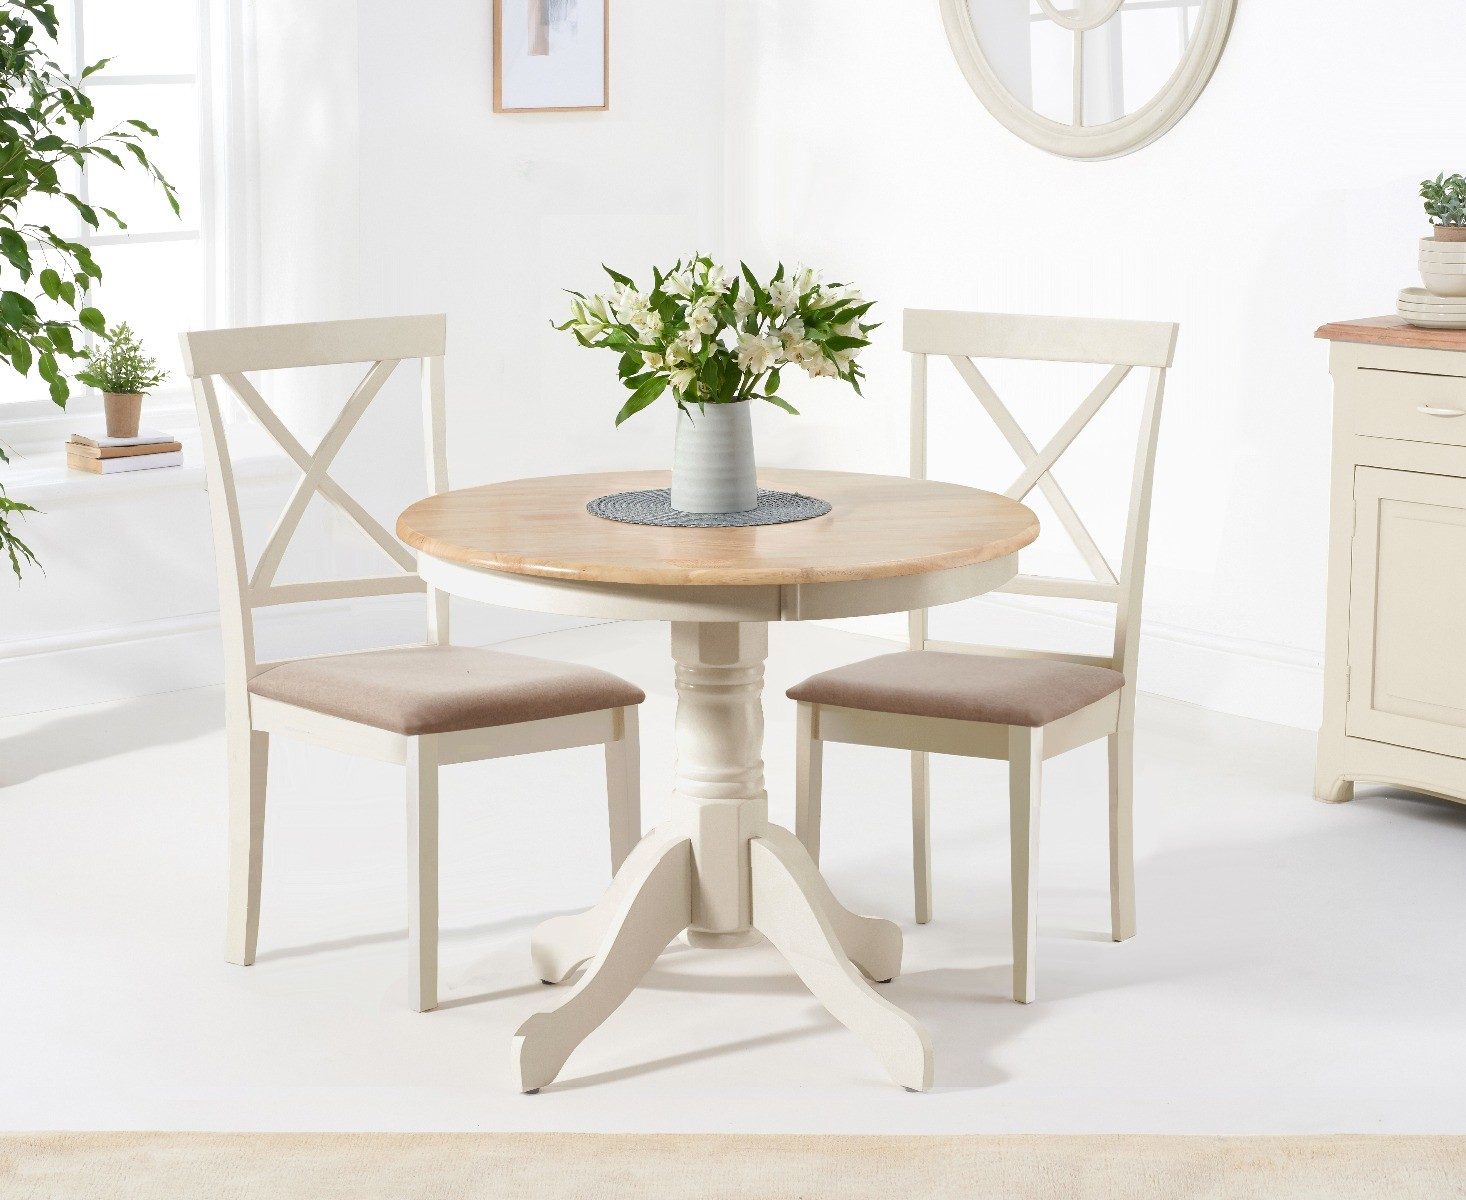 Epsom 9cm Oak and Cream Dining Table with Chairs with Fabric Seats